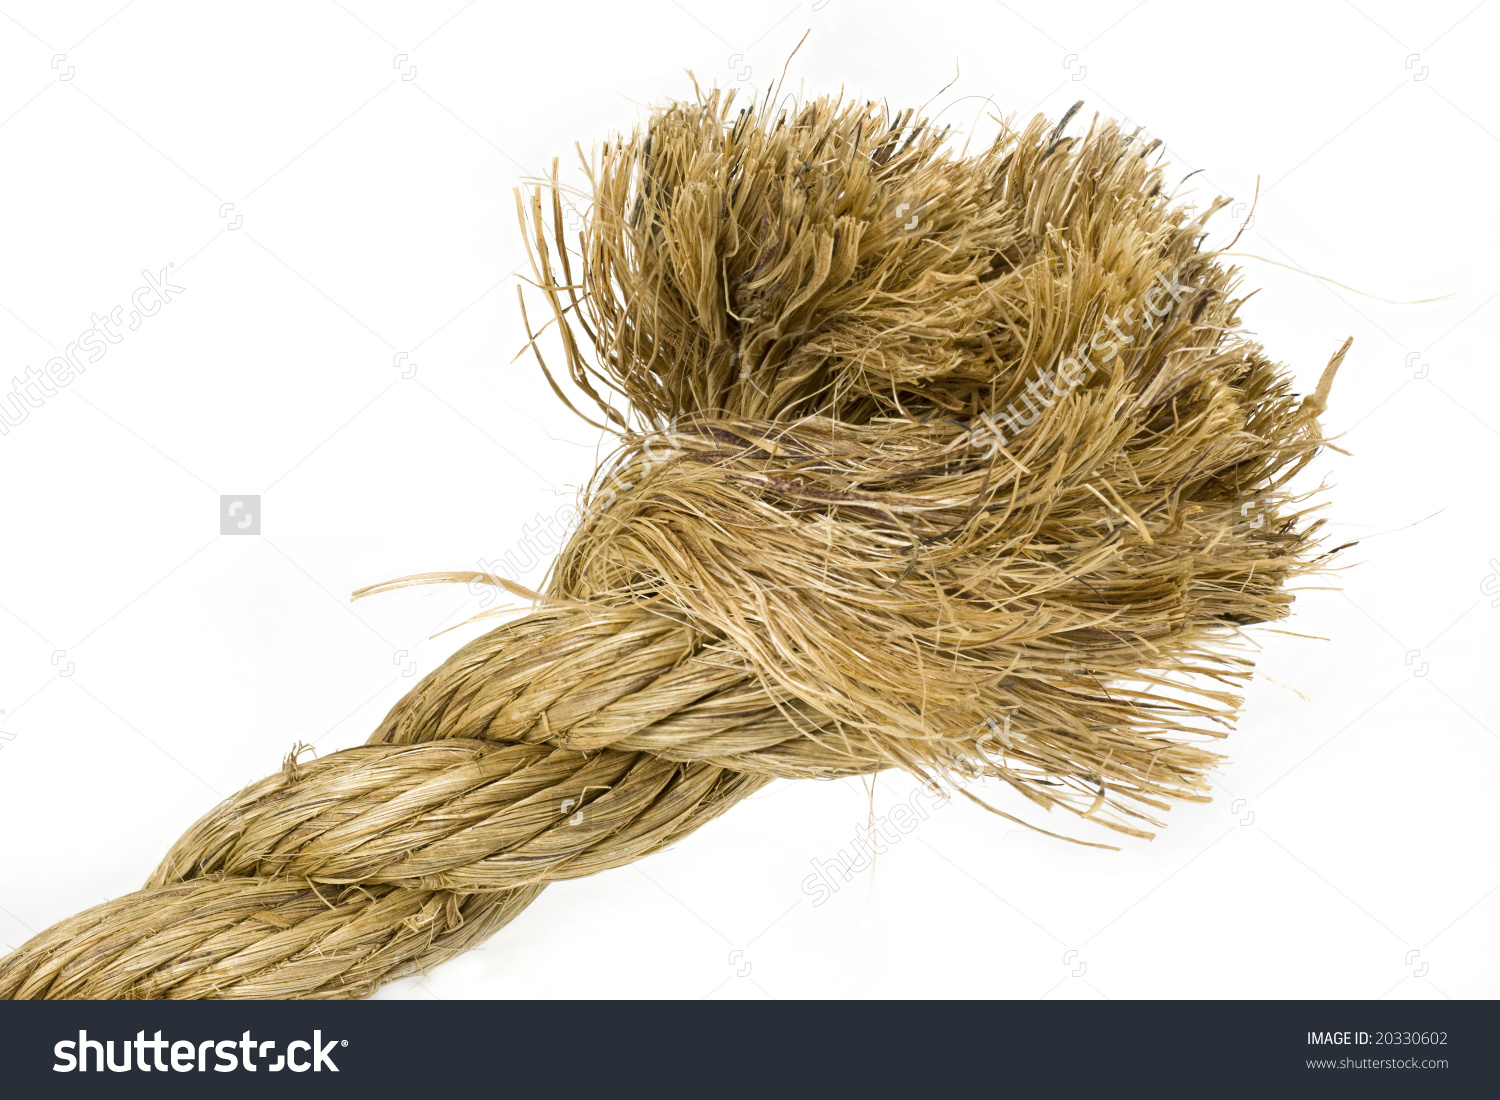 Badly Frayed End Natural Hemp Rope Stock Photo 20330602.